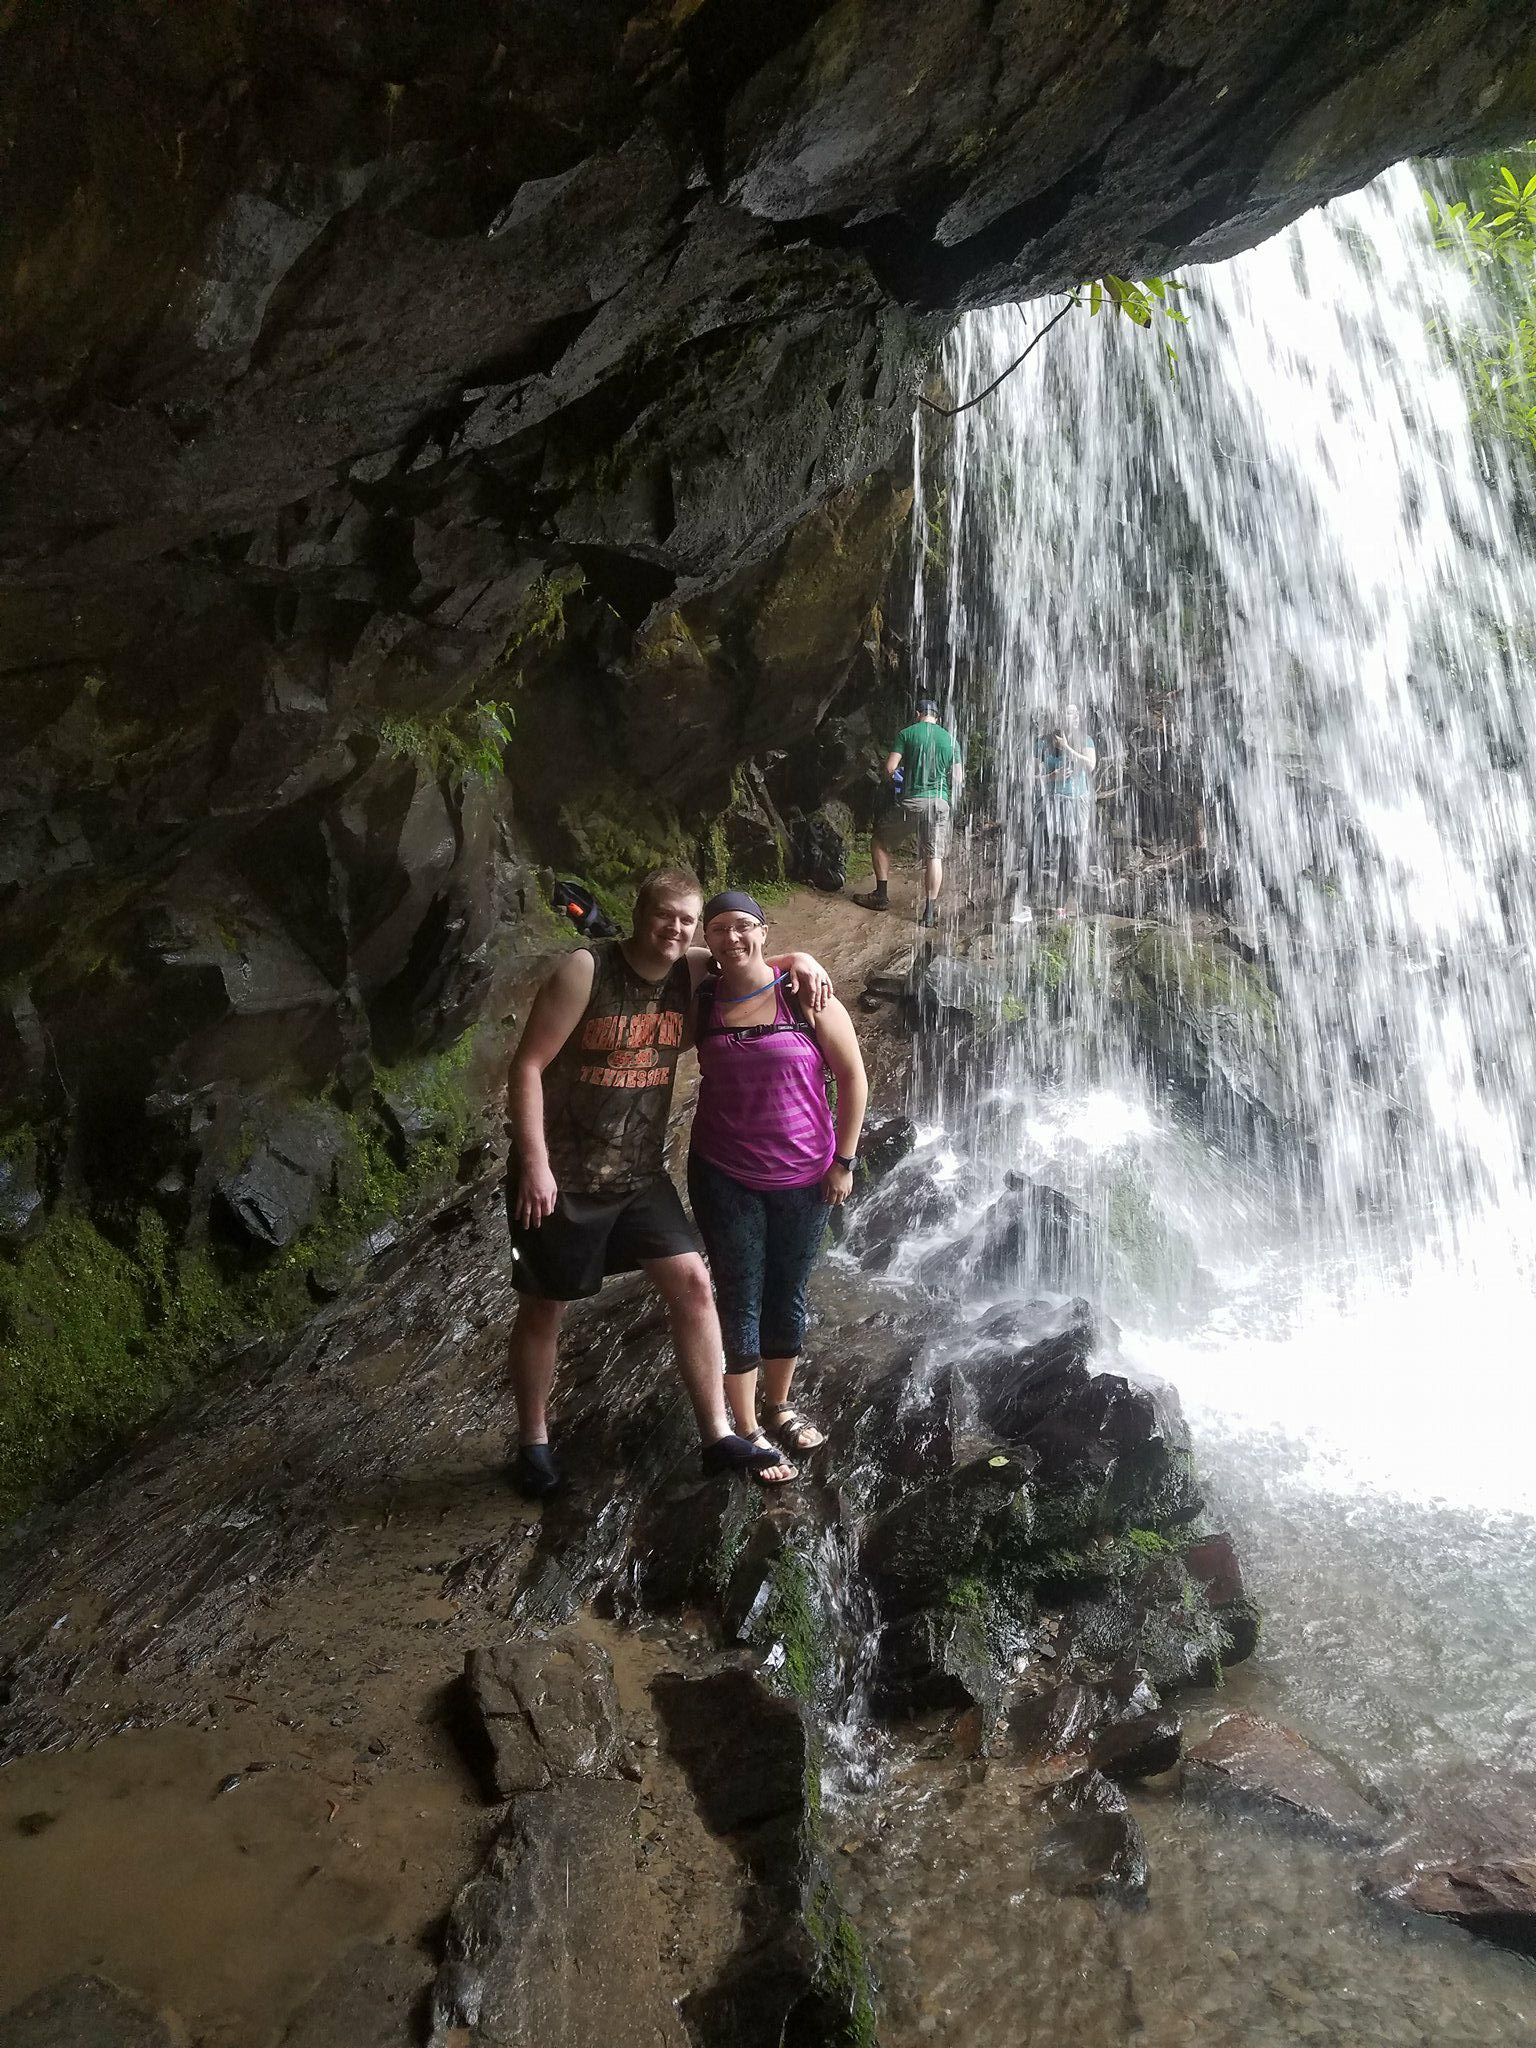 Elamon and her husband, Alec, hiking the Trillium Gap Trail in the Great Smokie Mountains National Park. The falls in the Background is Grotto Falls. The Smokies are one of their favorite places to visit in Tennessee. This is one of the places that inspired her to pursue a career in Natural Resource management.